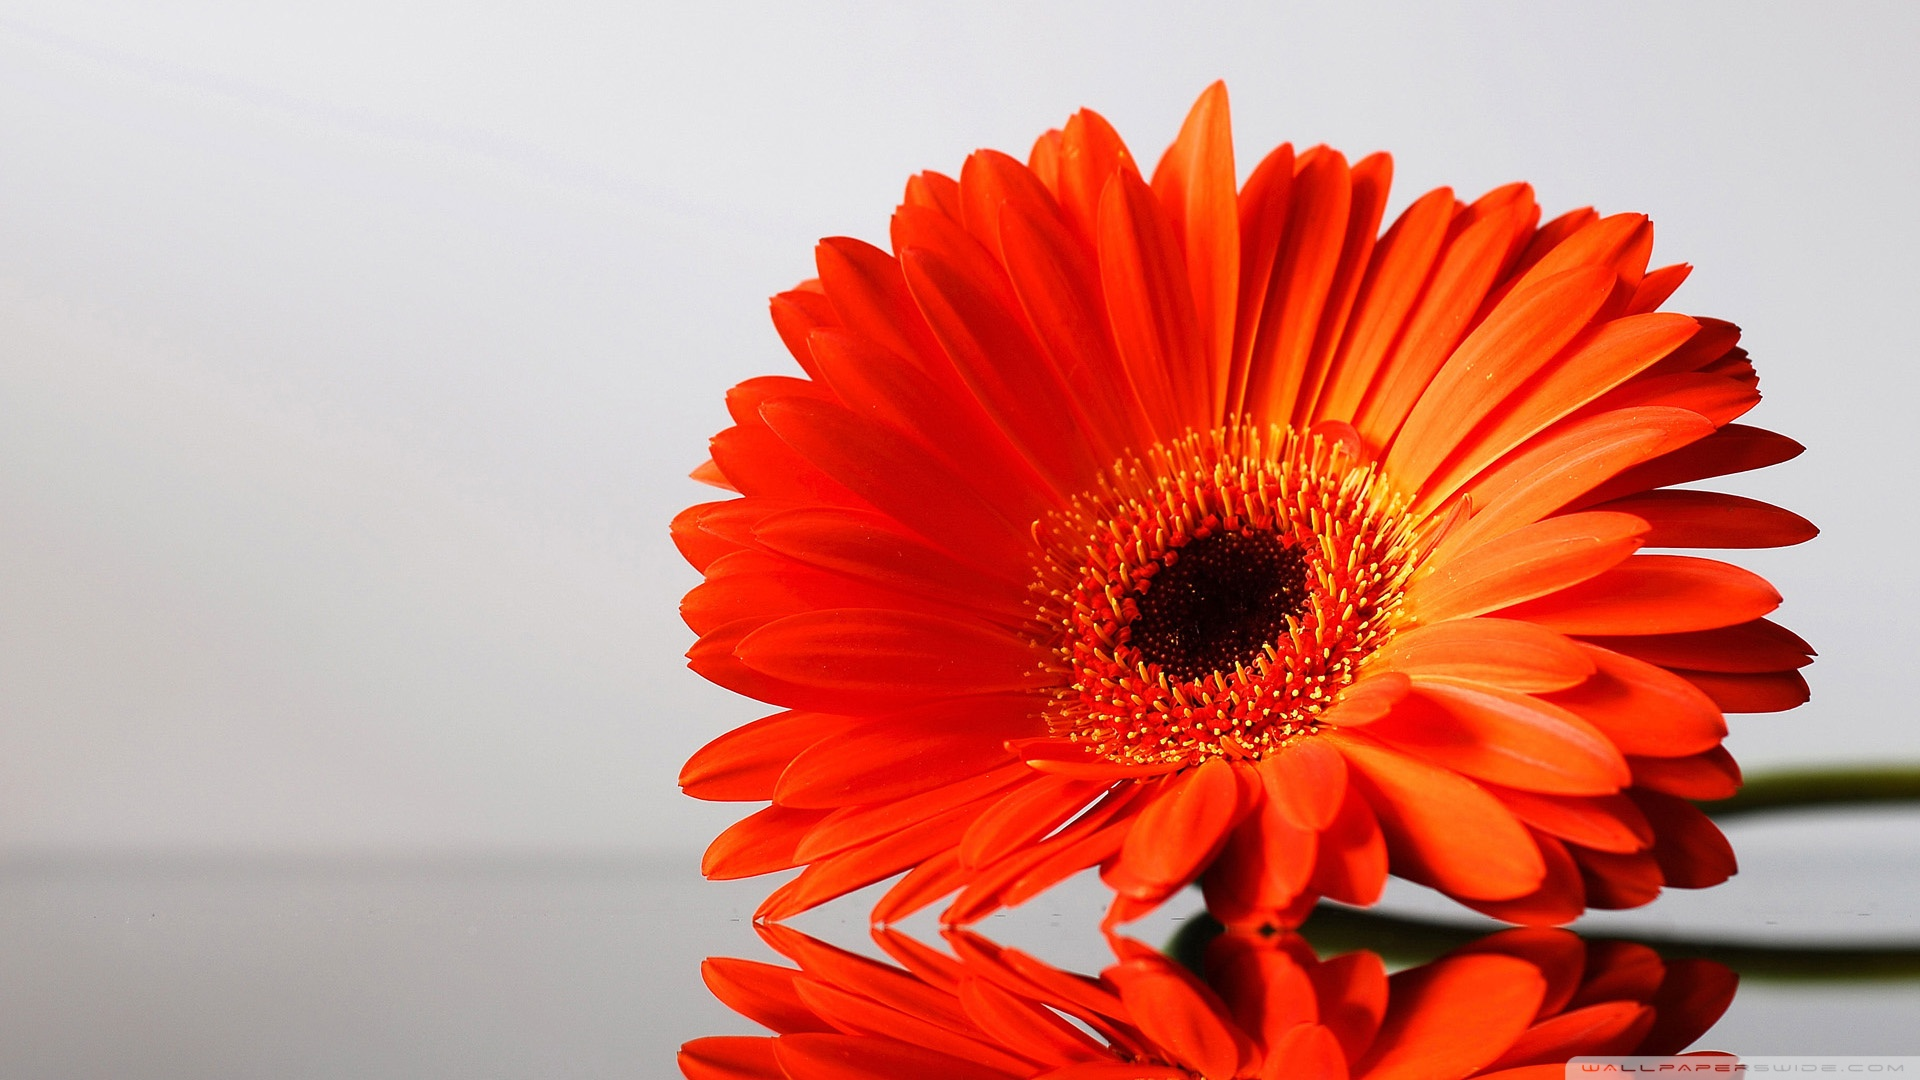 daisies flowers gerbera wallpapers flower wallpaper images 1920x1080